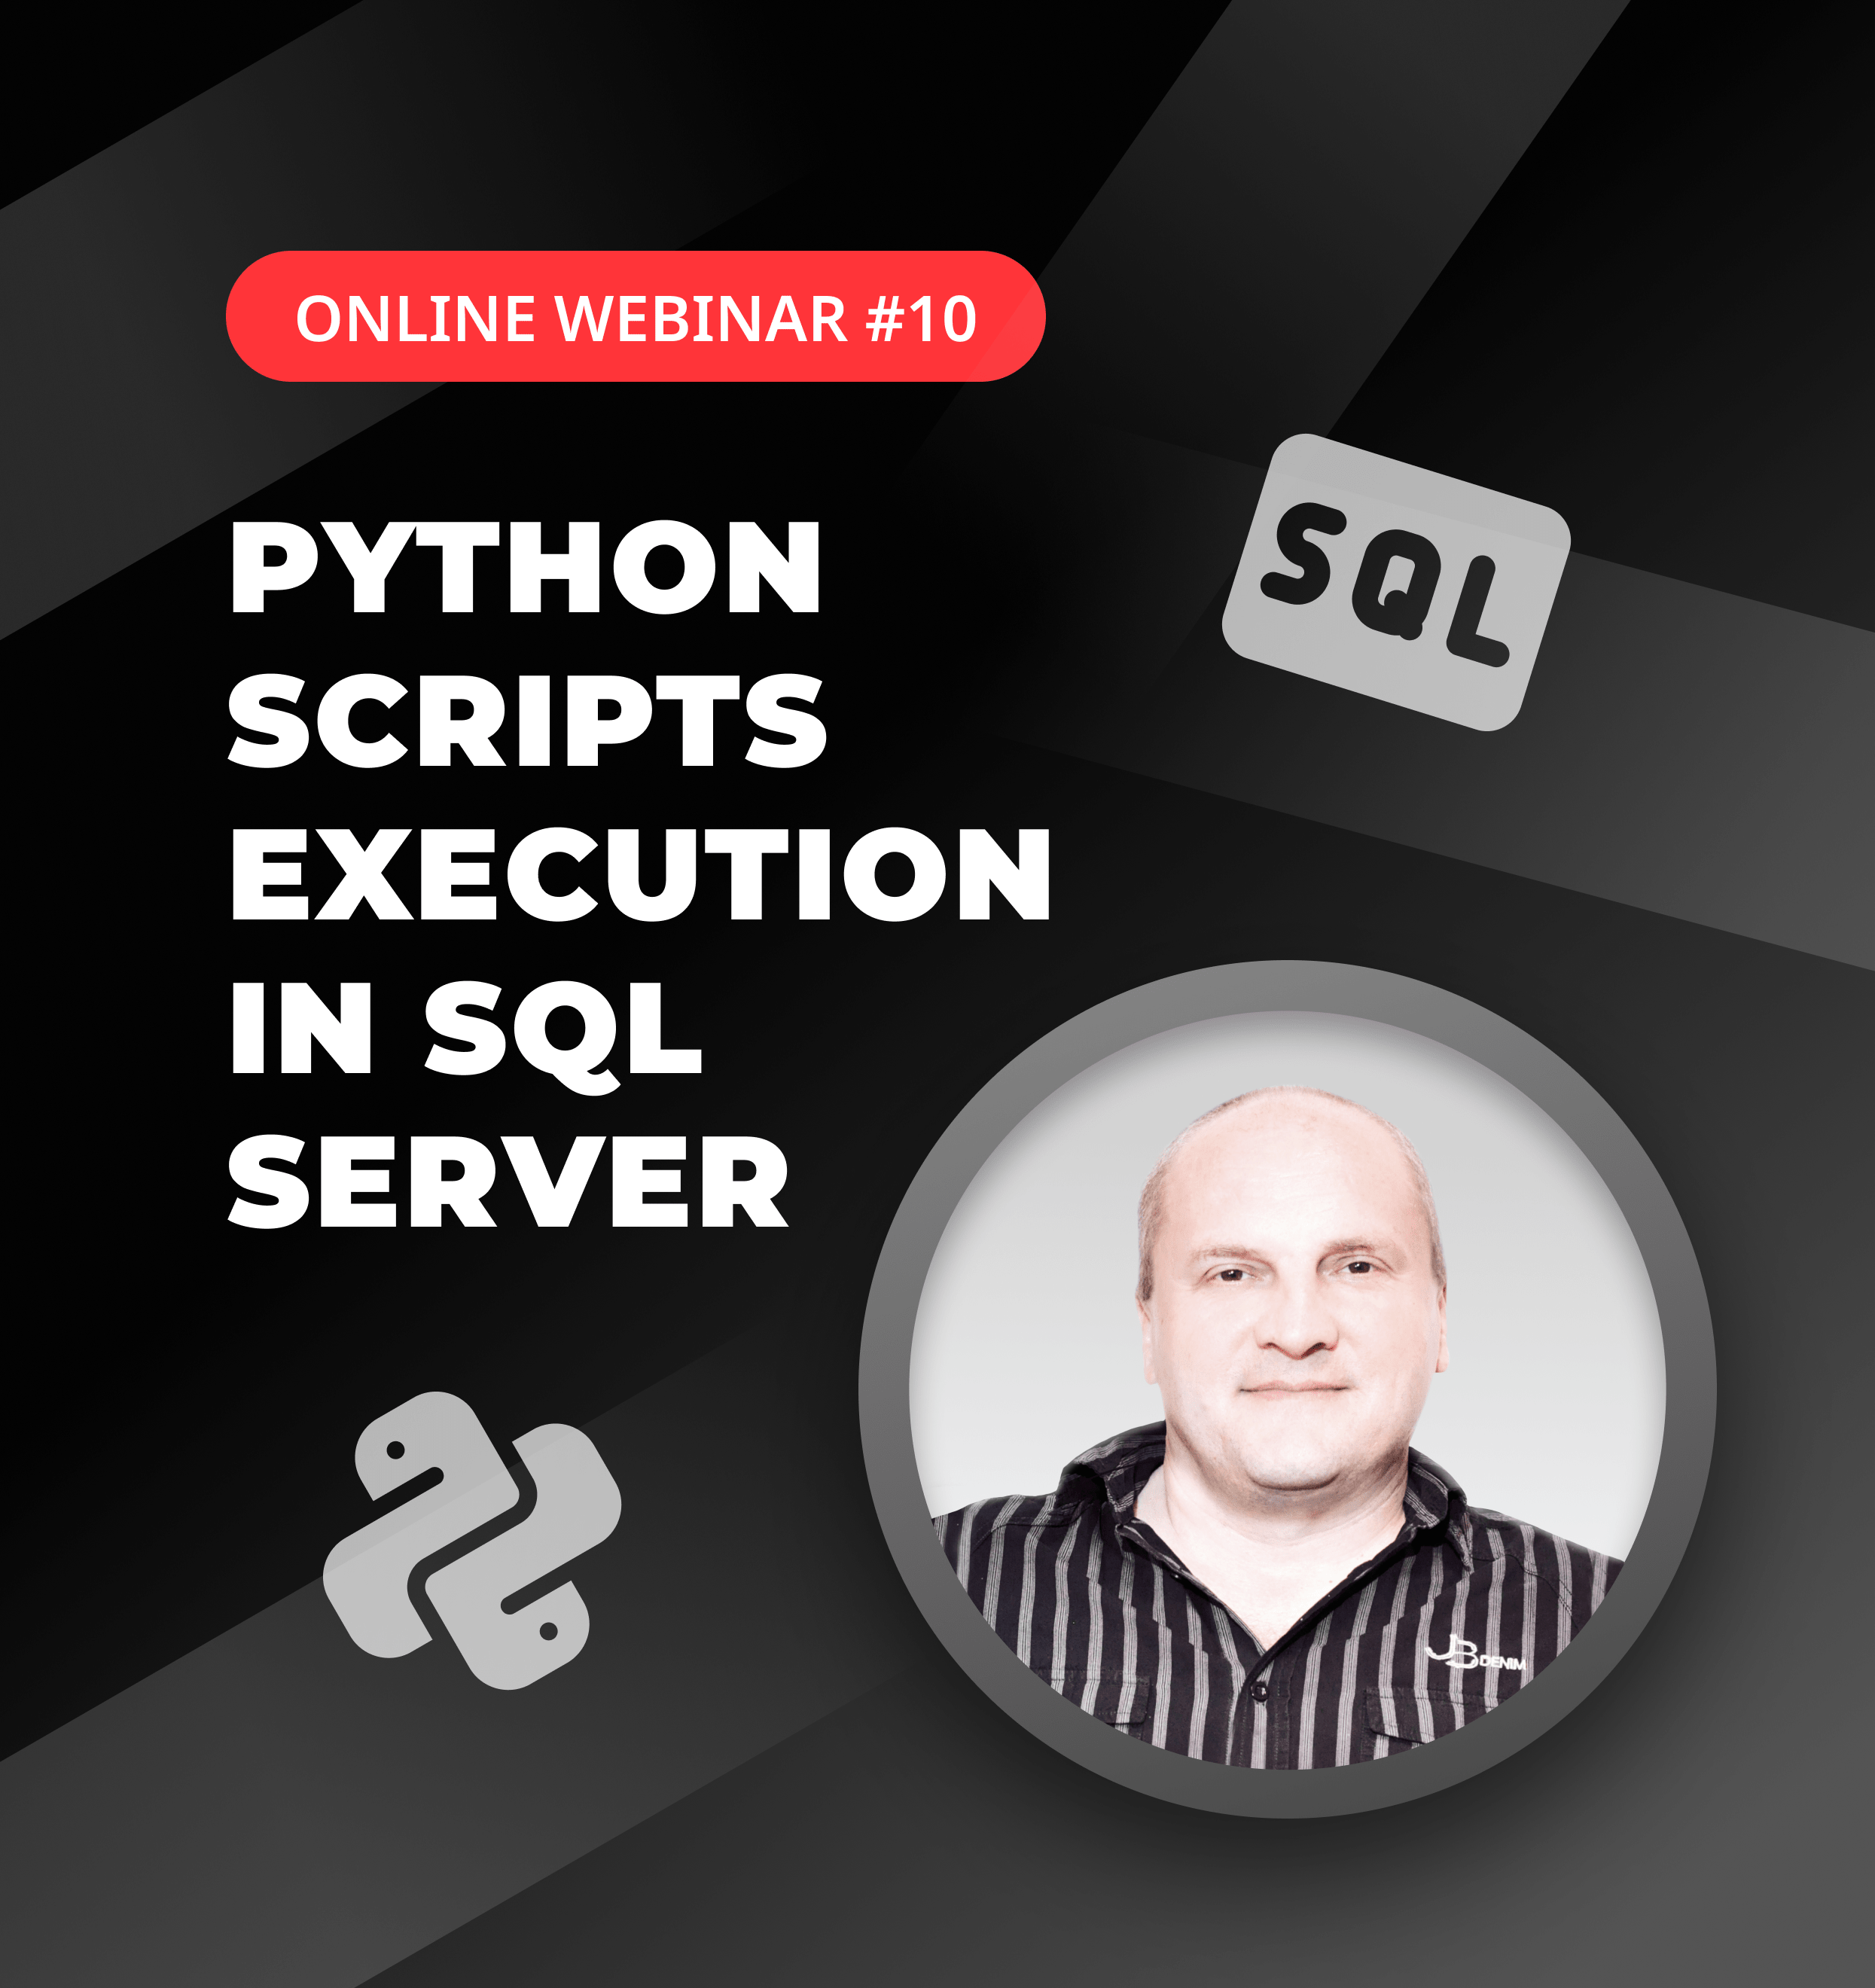 Python scripts execution in SQL Server